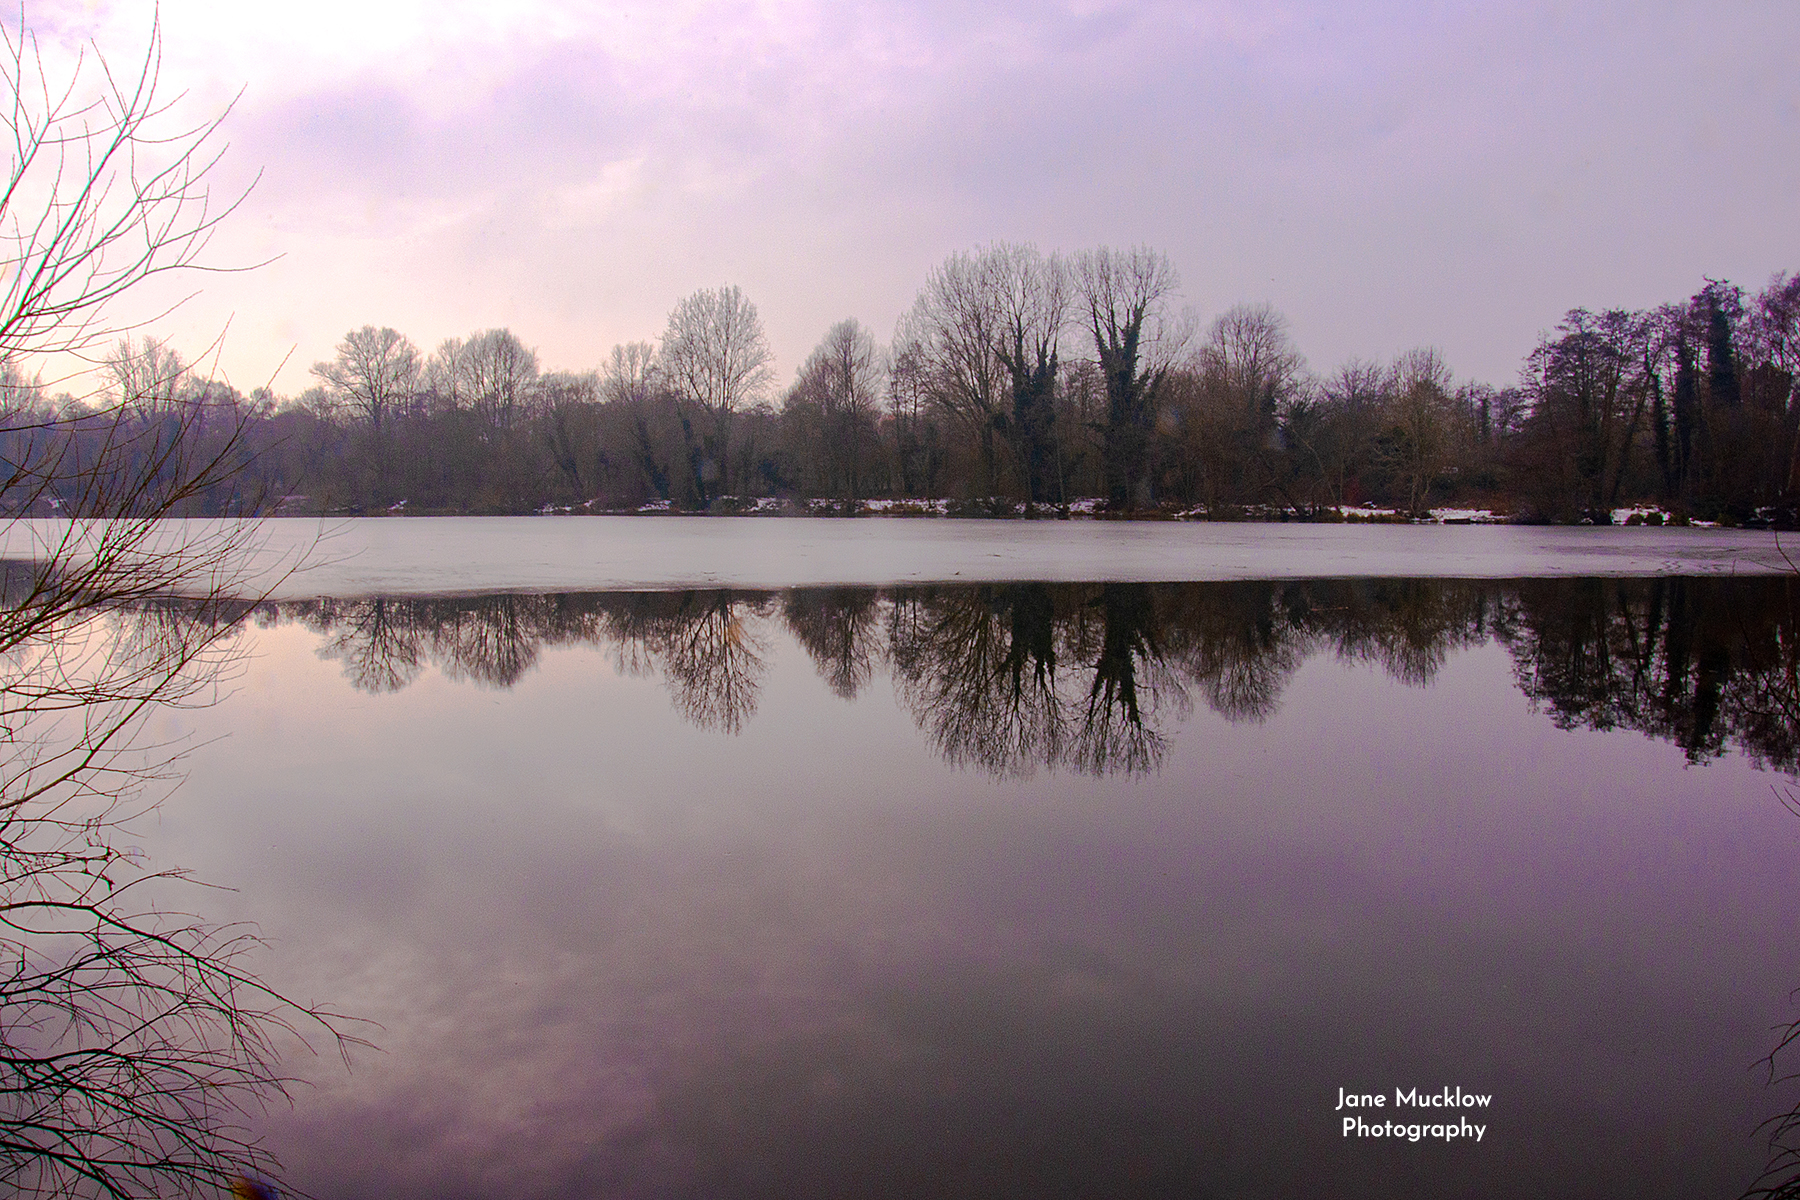 Photo of a winter sunset and reflections on an icy lake at Sevenoaks Wildlife Reserve, by Jane Mucklow